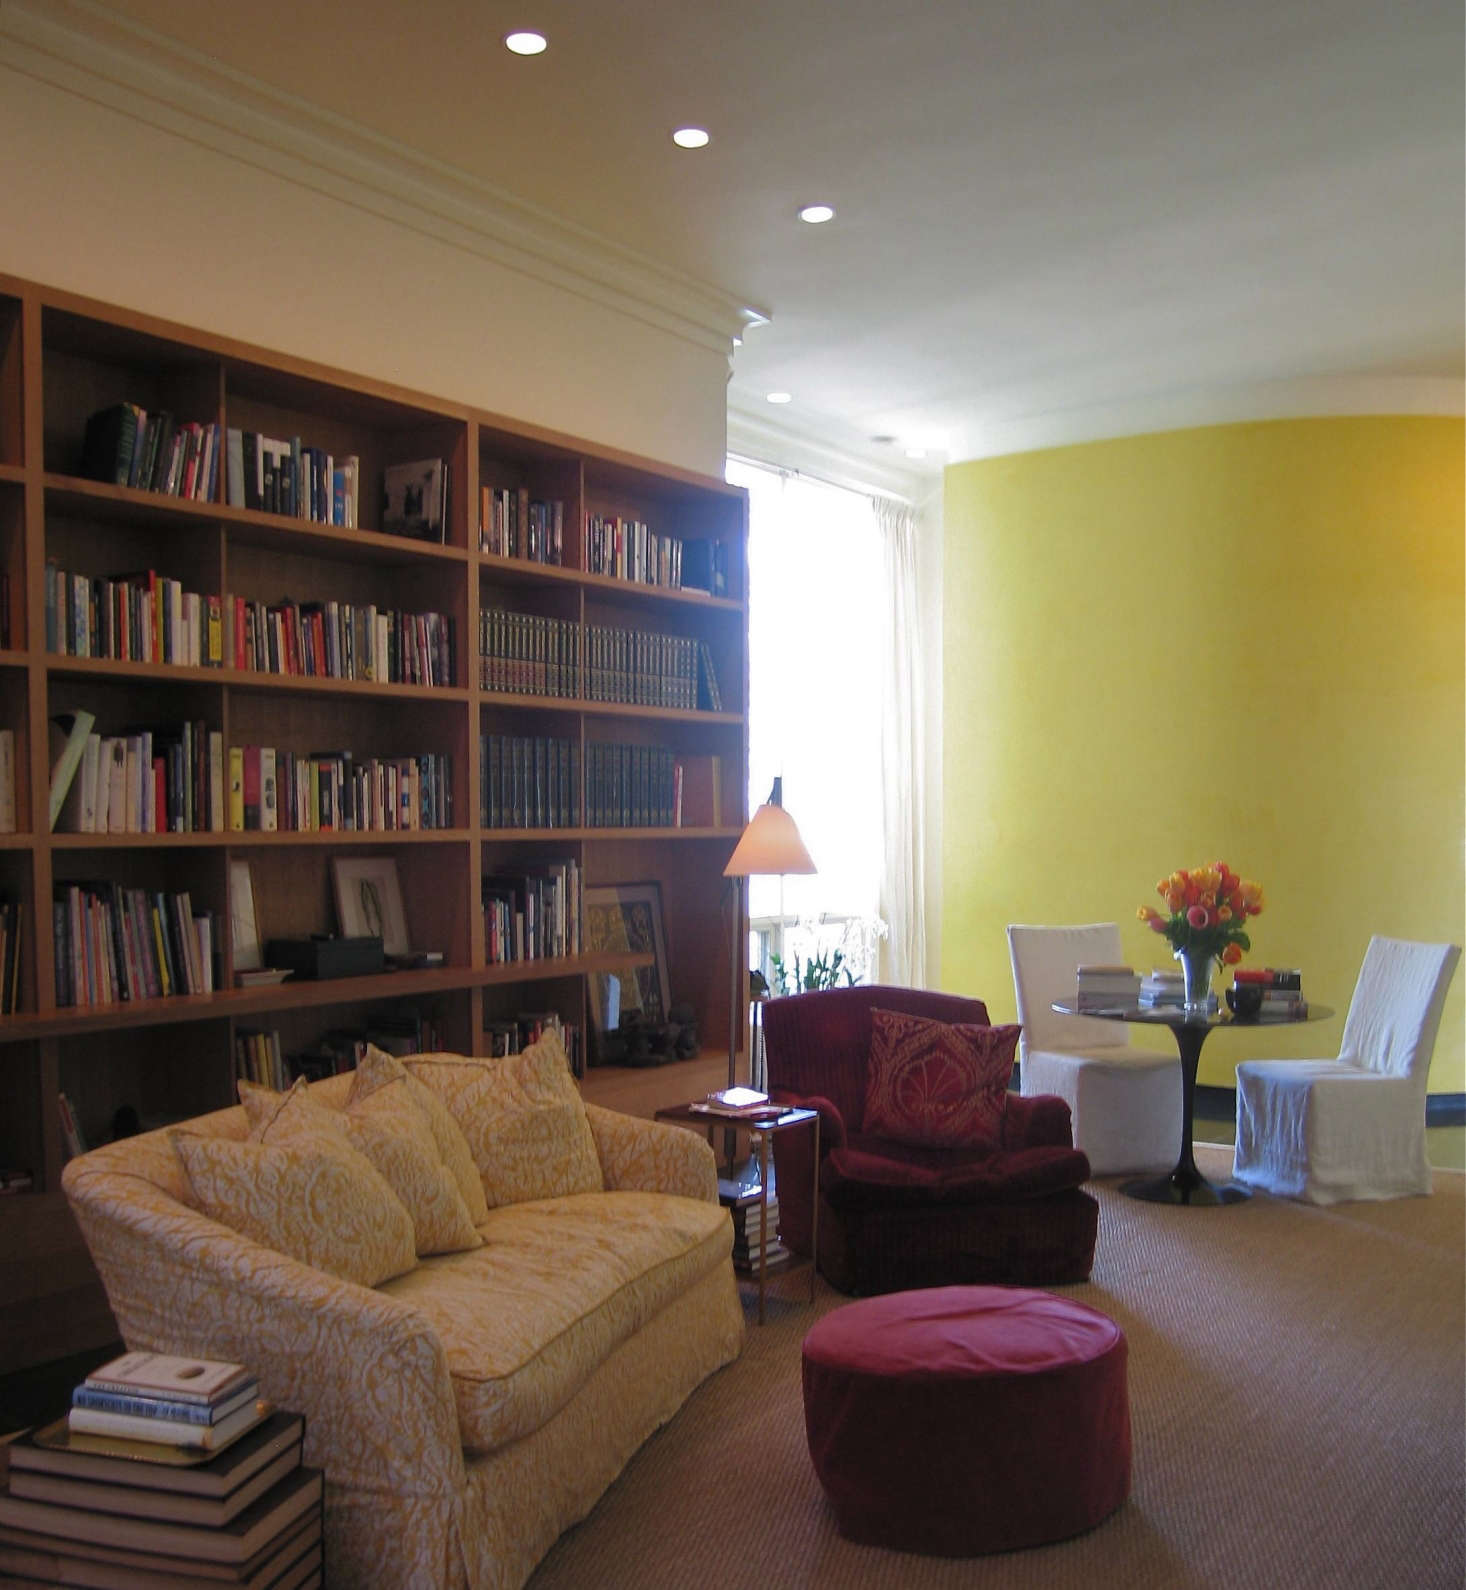 Library, Montecito: This room is actually a very wide hallway, yet the placement of the furnishings and the way architect Michael Paladino placed the curved yellow wall at the end has turned it into a well used room. The traditional seating, made more casual in slipcovers, sits happily with the modern design elements. Photo: Laura Clayton Baker